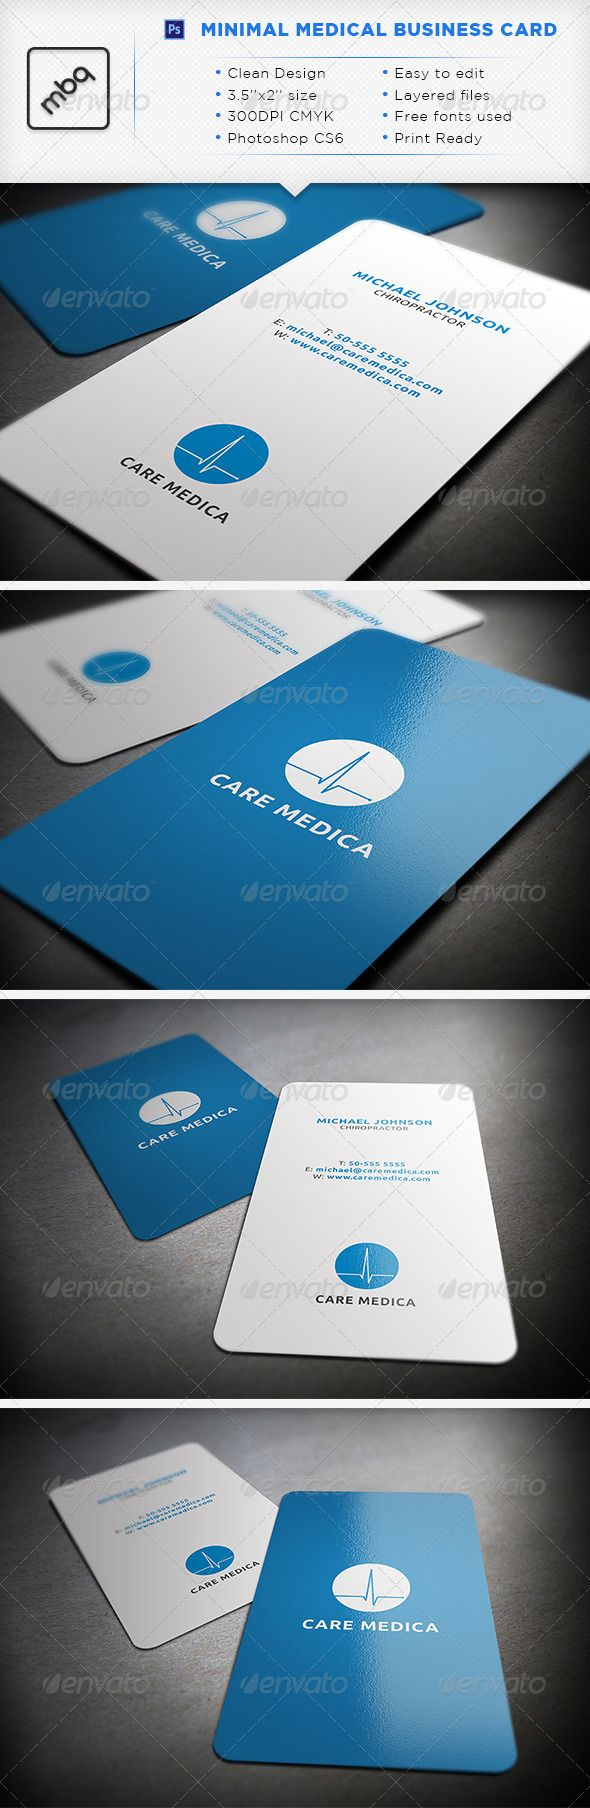 51 best Medical Doctor Business Card images on Pinterest | Business ...